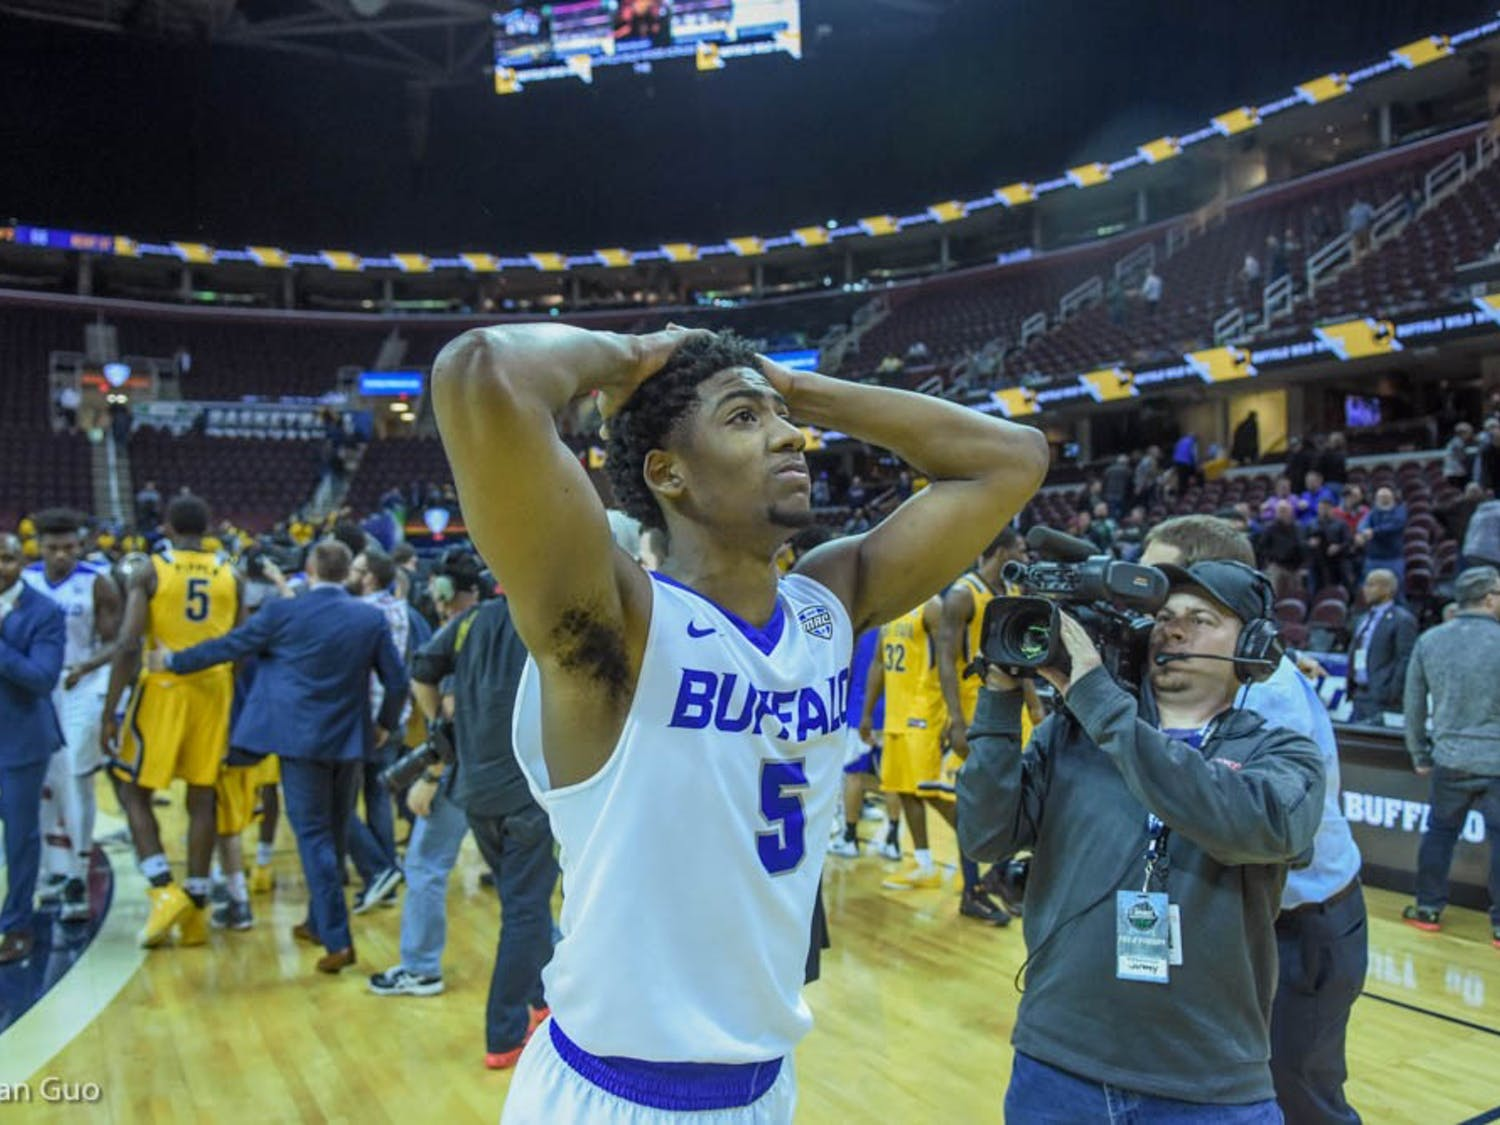 Buffalo lost a physical contest Thursday night to the Kent State Golden Flashes. The game came down to a last second shot from sophomore CJ Massinburg.